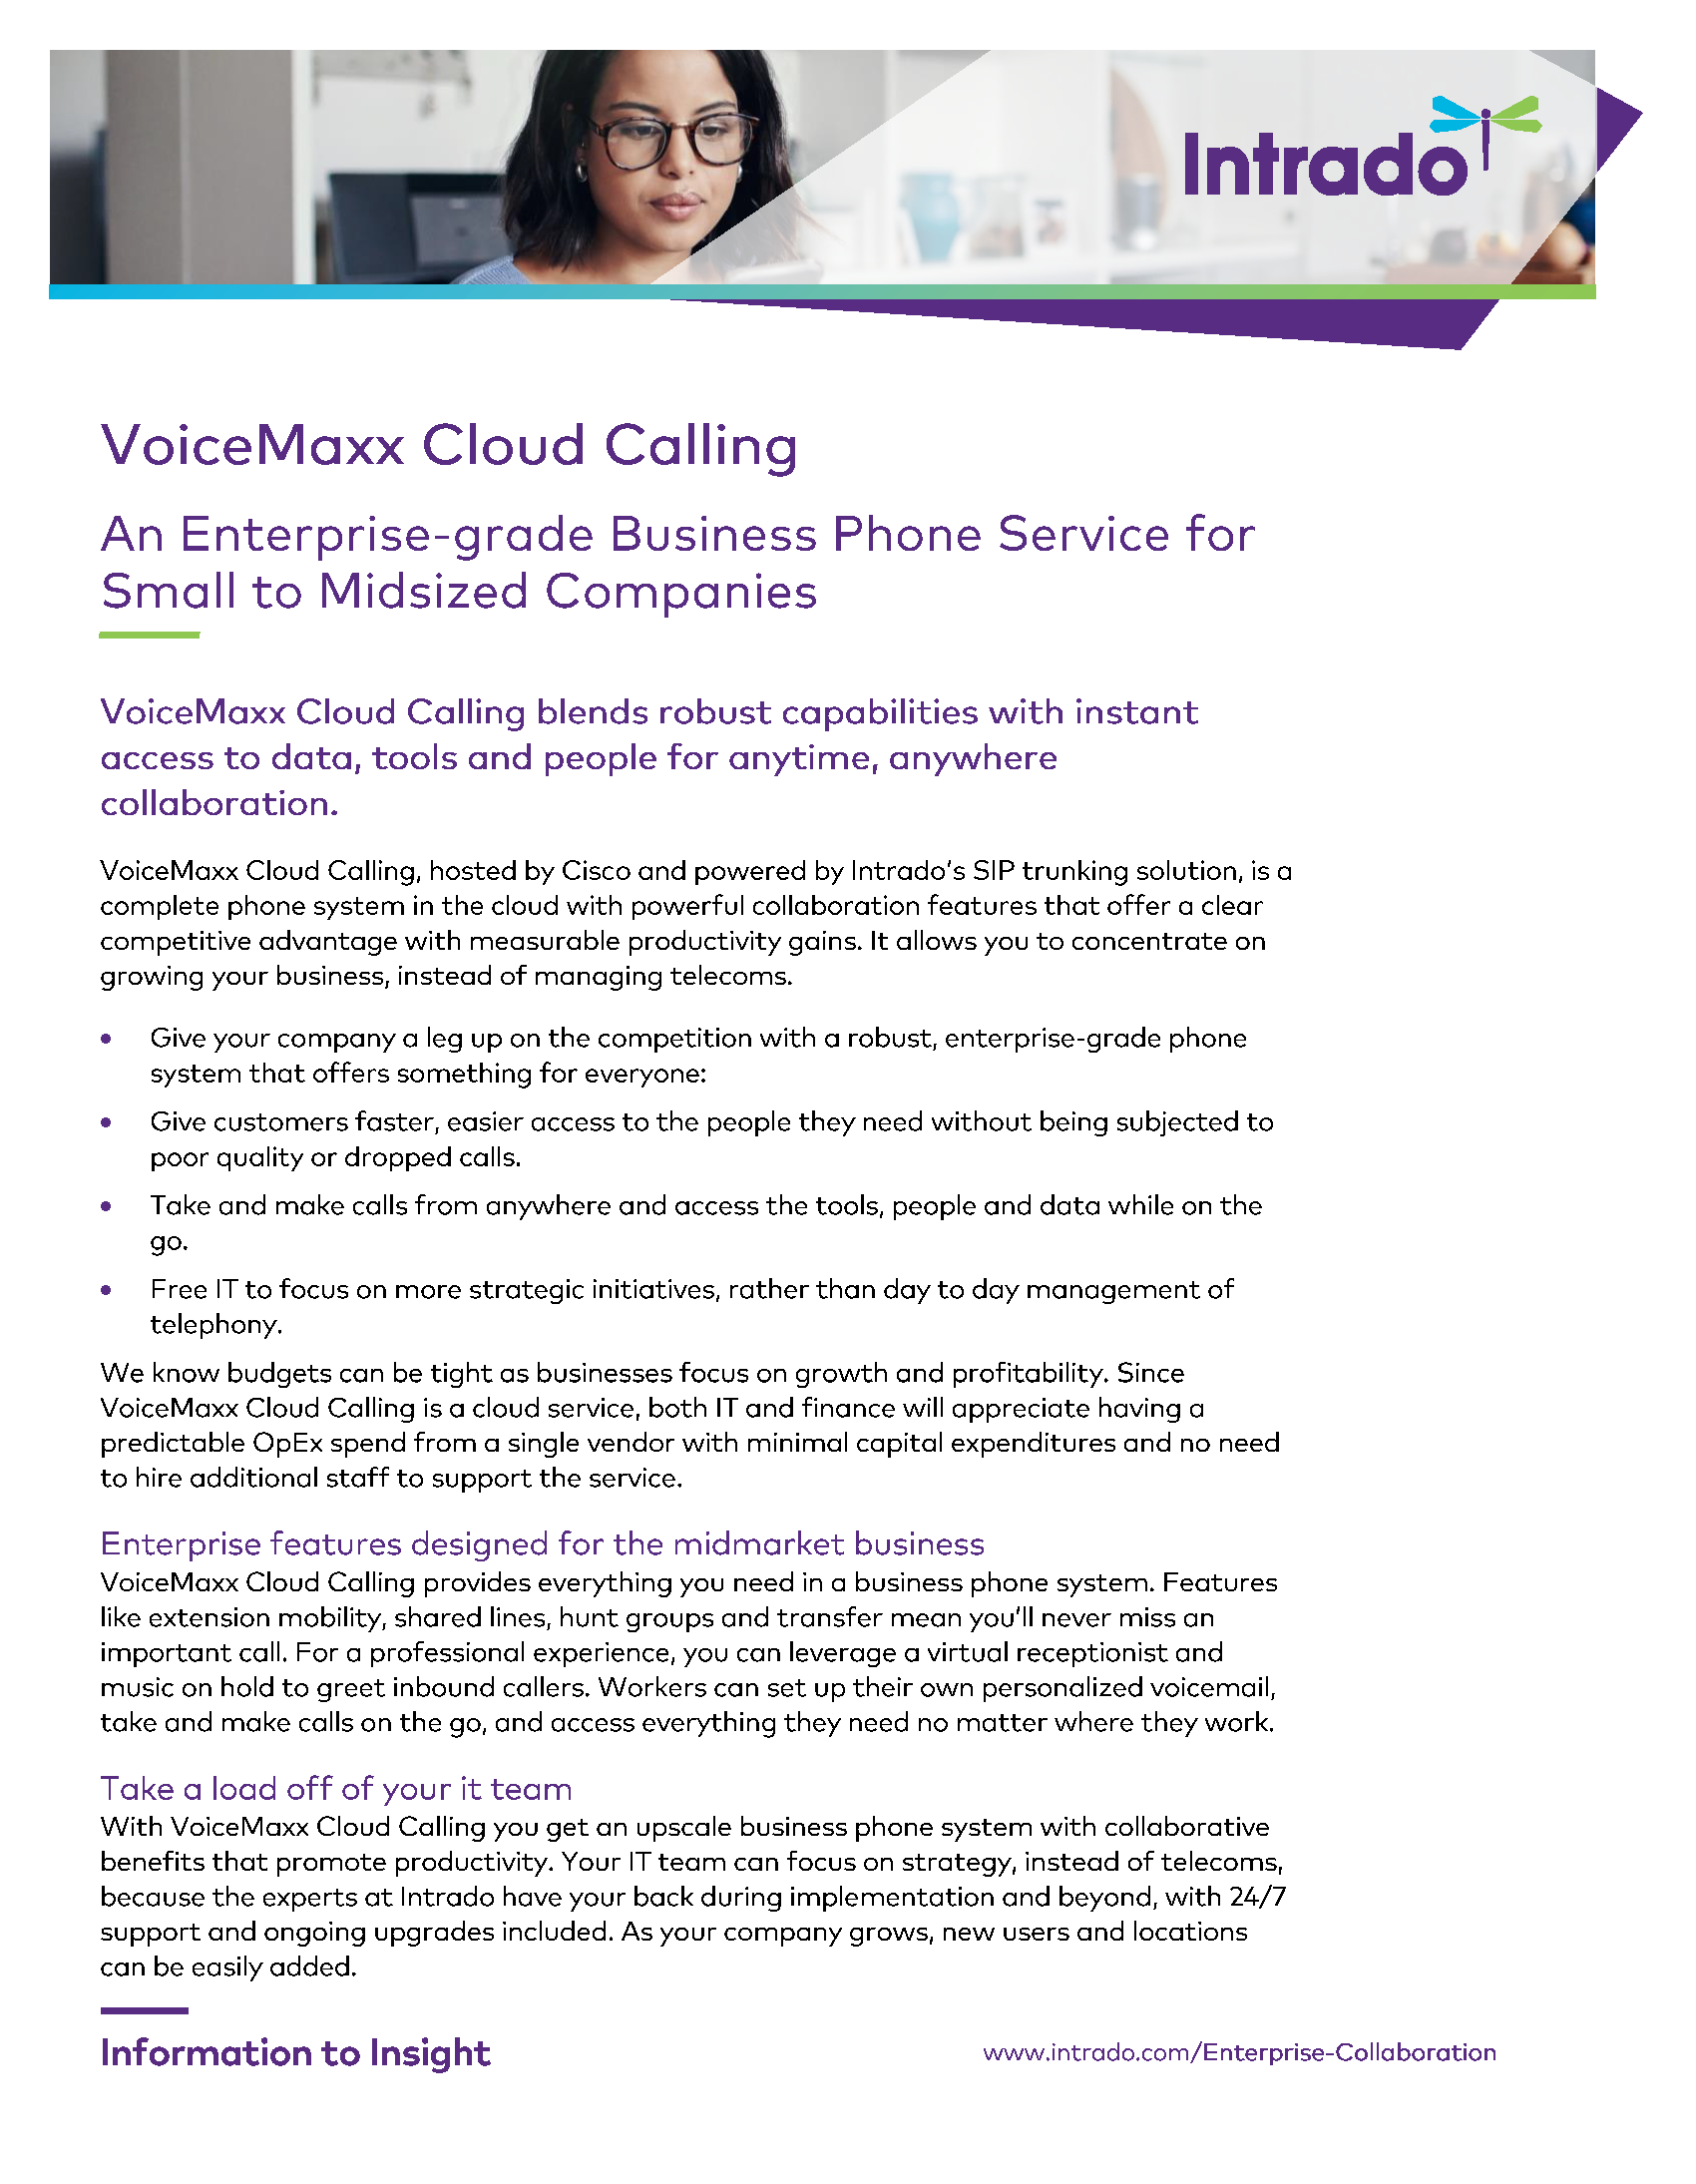 VoiceMaxx Cloud Calling